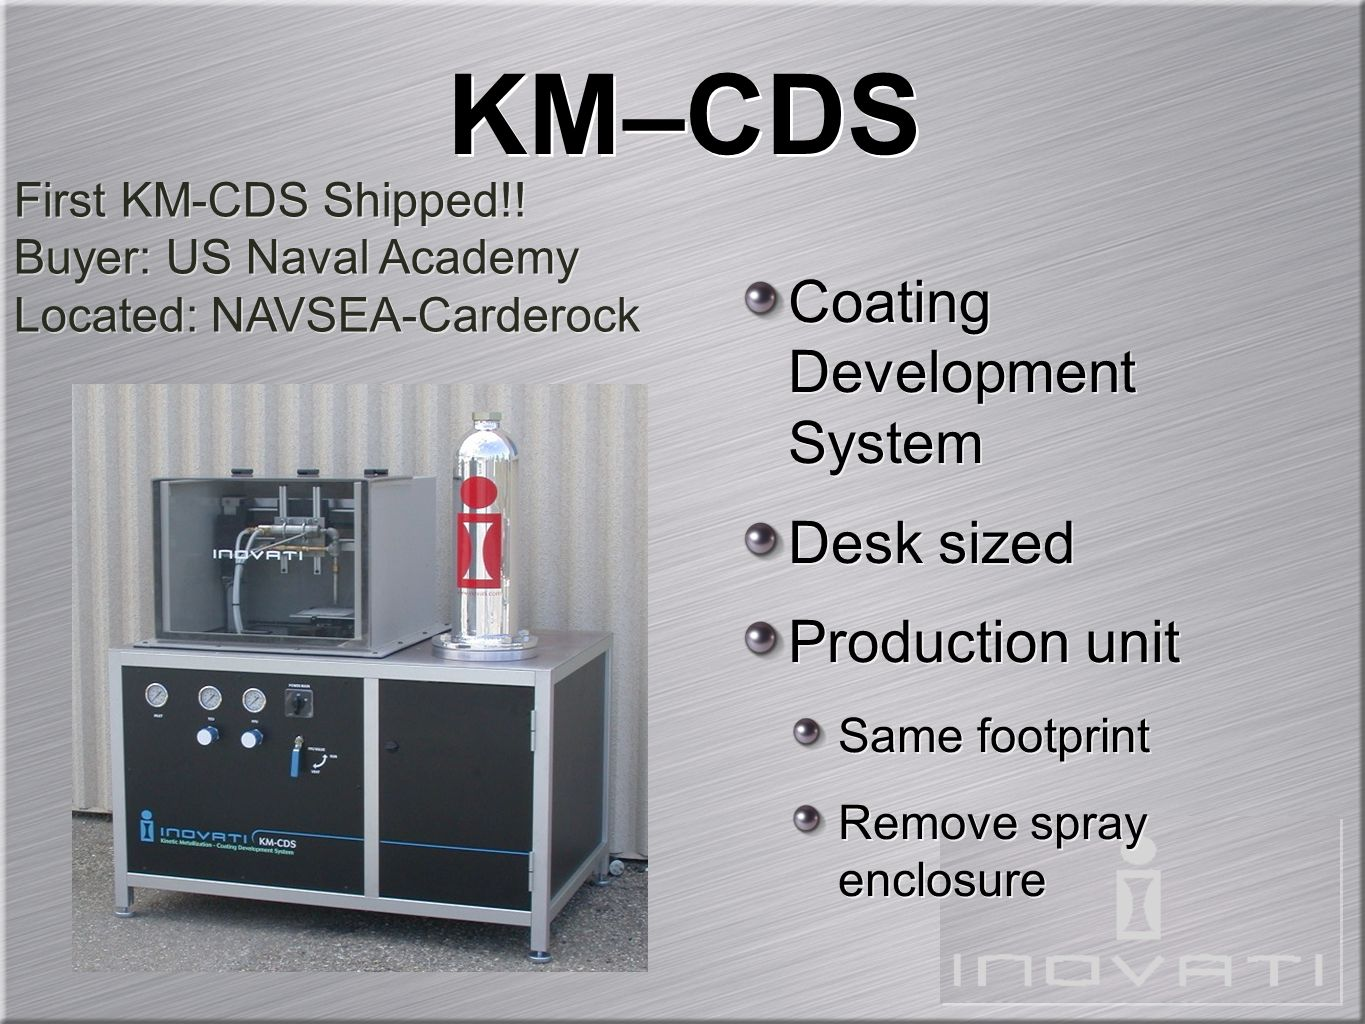 KM Critical Components Powder Fluidizing Unit Closed-loop mass-loss control Thermal Conditioning Unit Low power Deposition Nozzle Friction compensated Powder Fluidizing Unit Closed-loop mass-loss control Thermal Conditioning Unit Low power Deposition Nozzle Friction compensated He TCU PFU DN PFU TCU DN